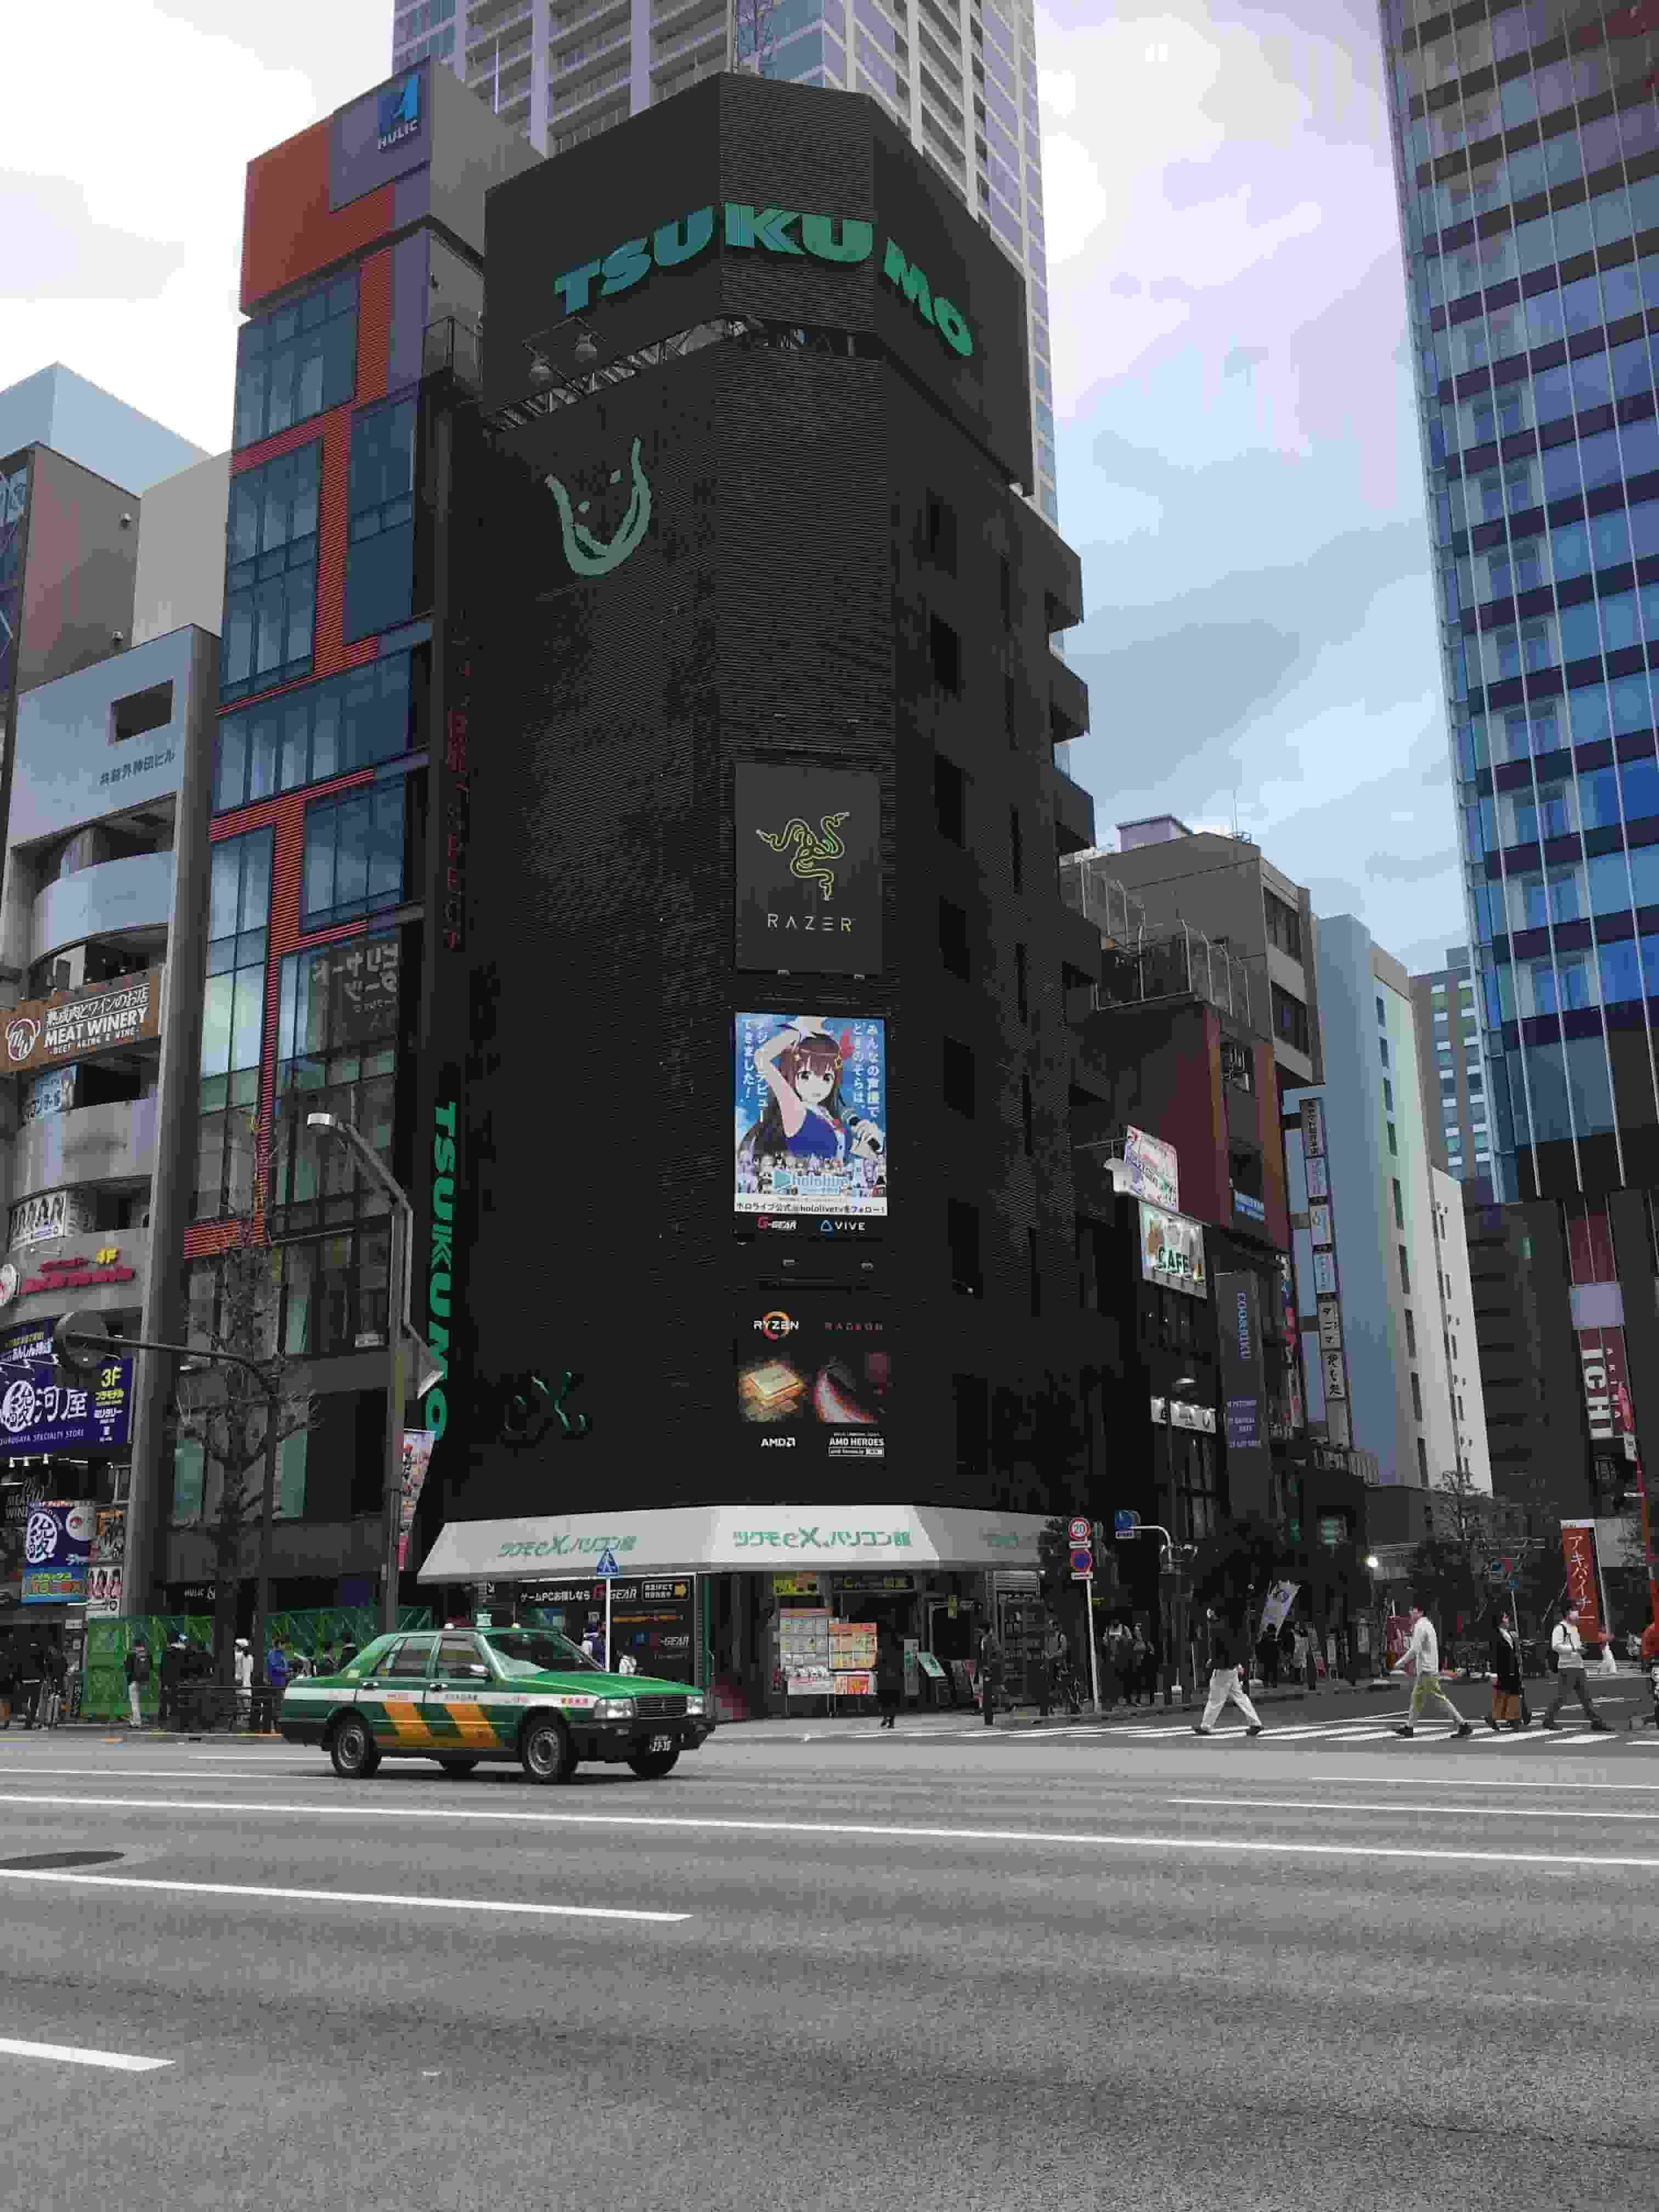 TSUKUMO is the Wisest Choice for PC Parts with Six Stores in